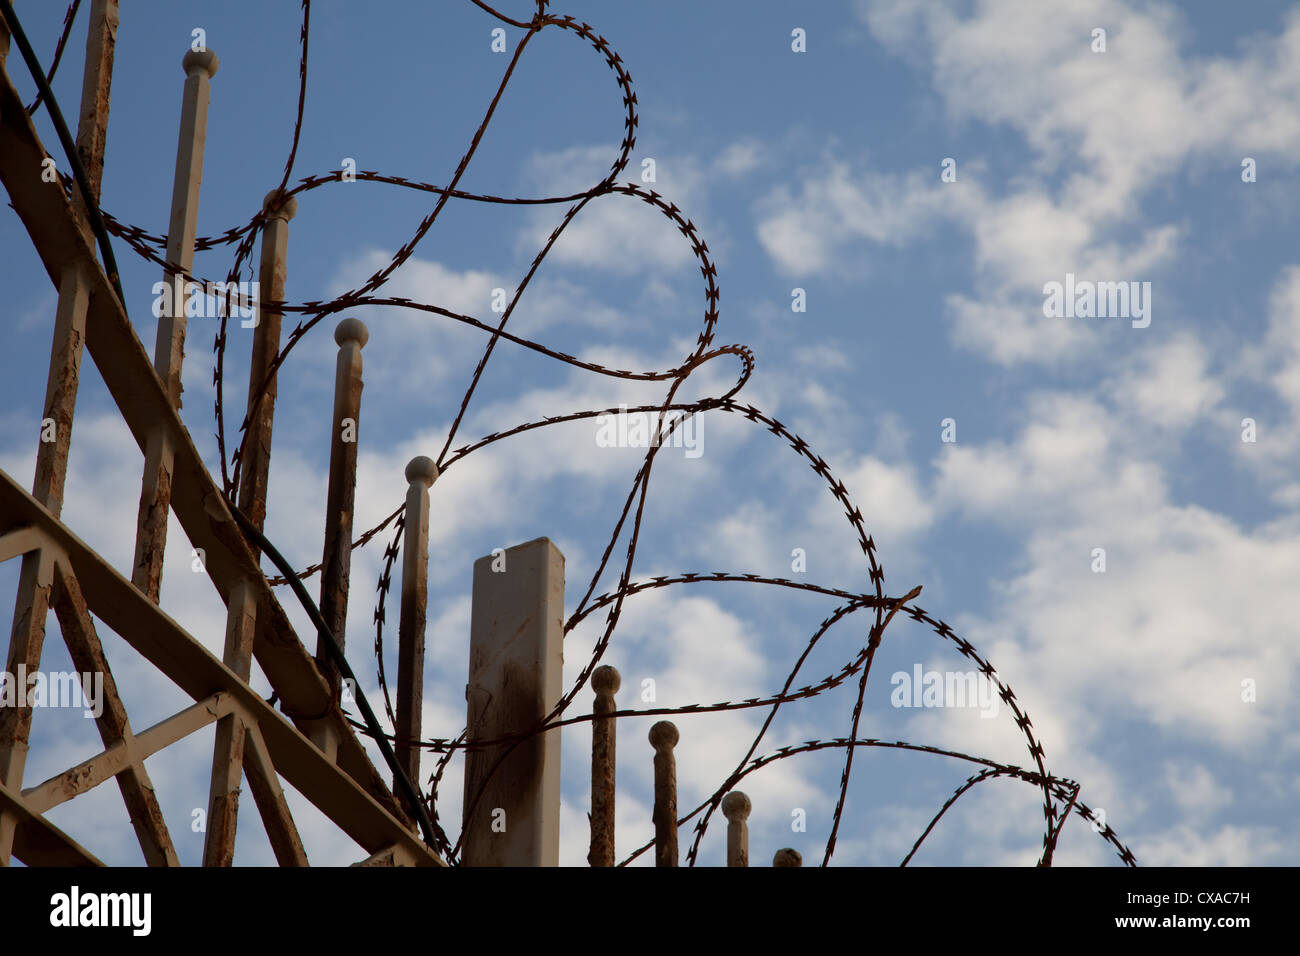 Barbwire on a fence with sky and clouds background - Stock Image